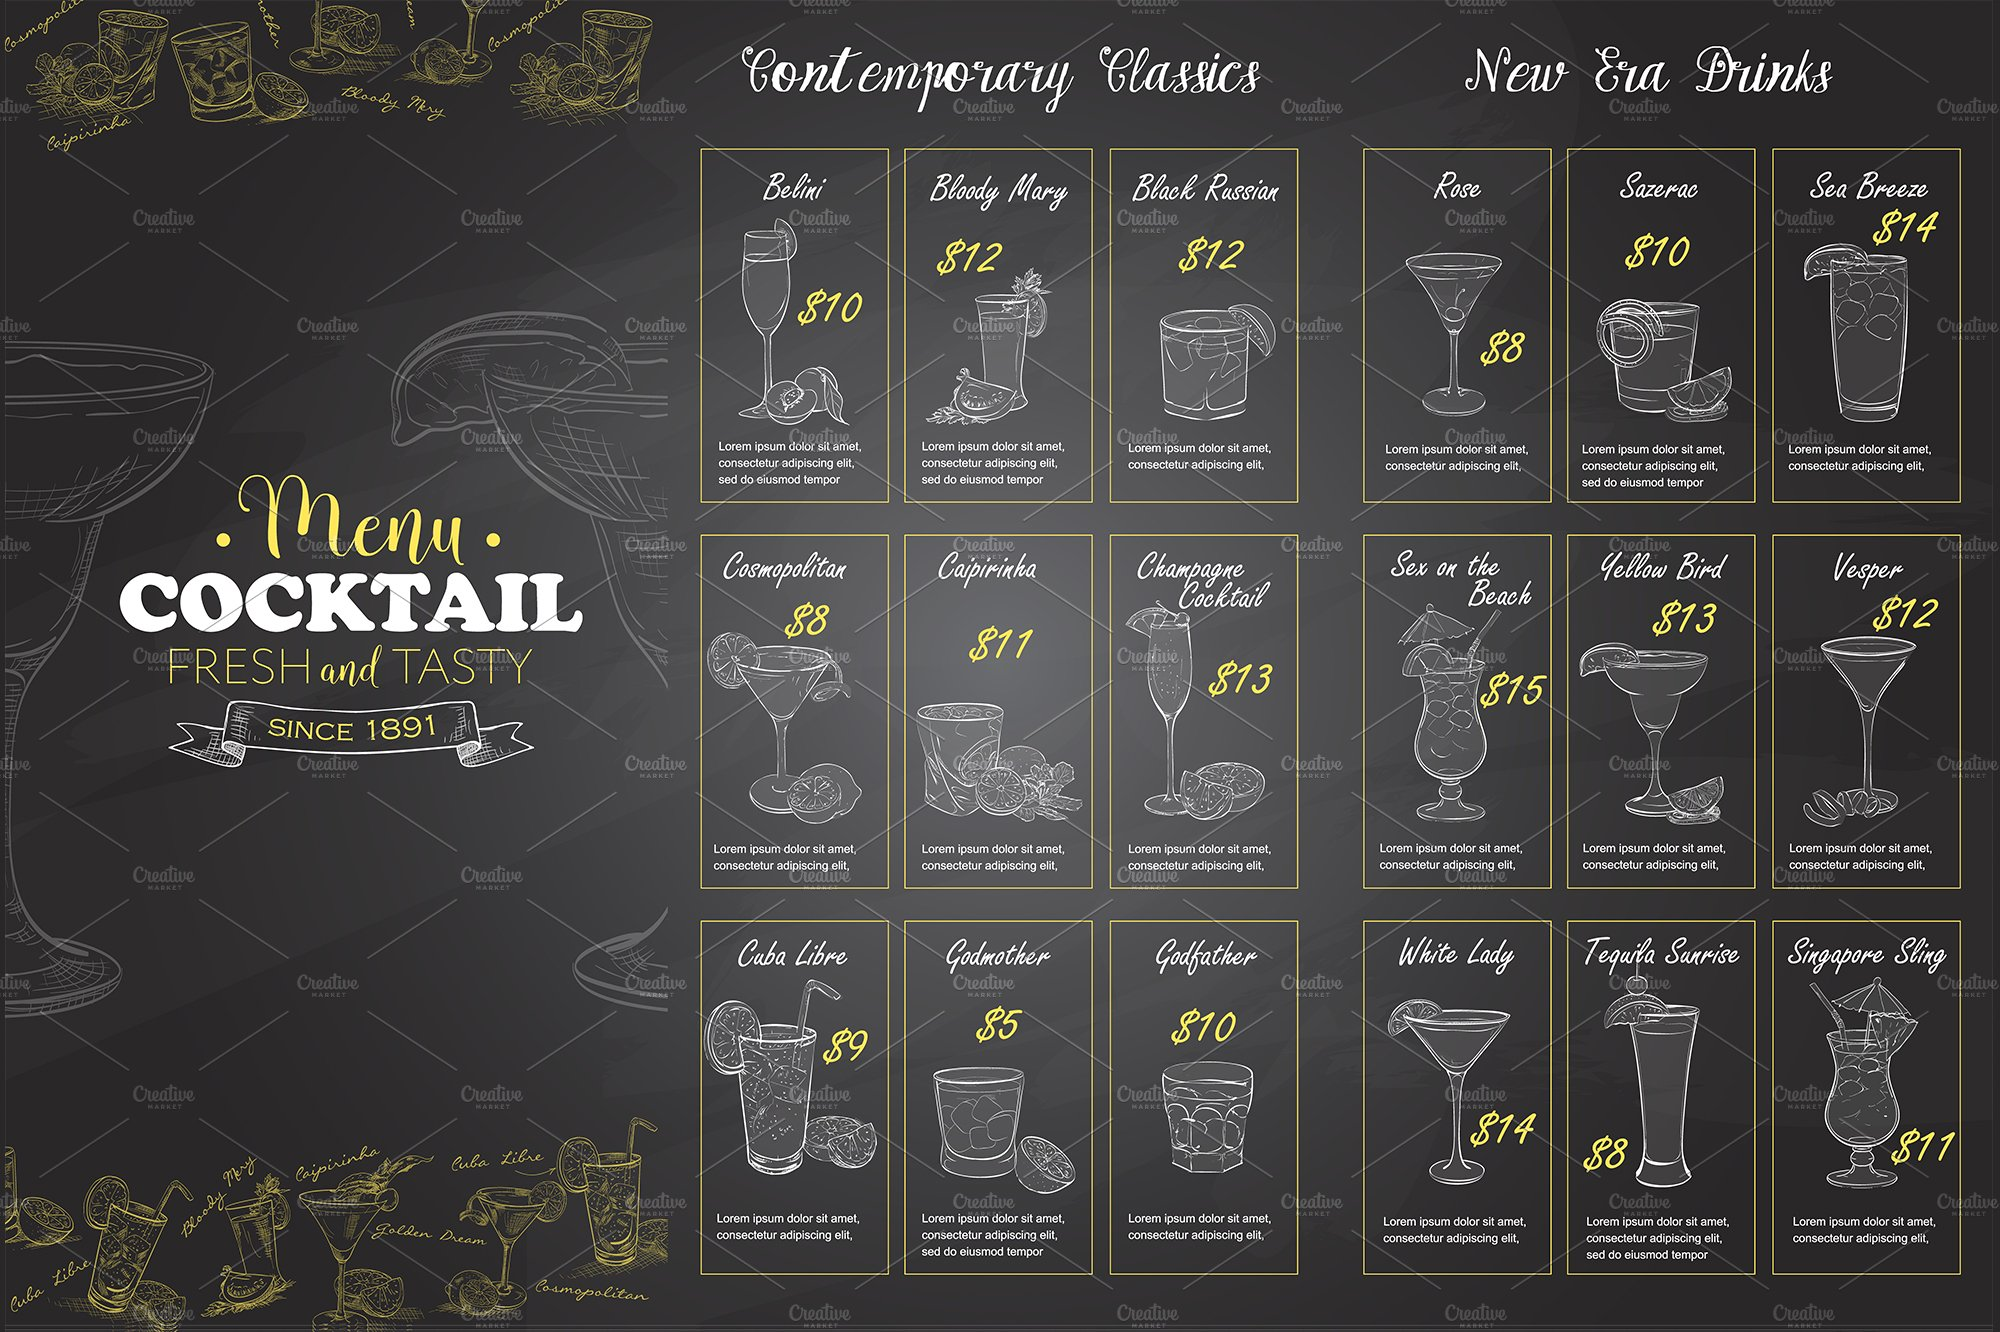 Creative drink menus pictures to pin on pinterest pinsdaddy for Table 52 drink menu